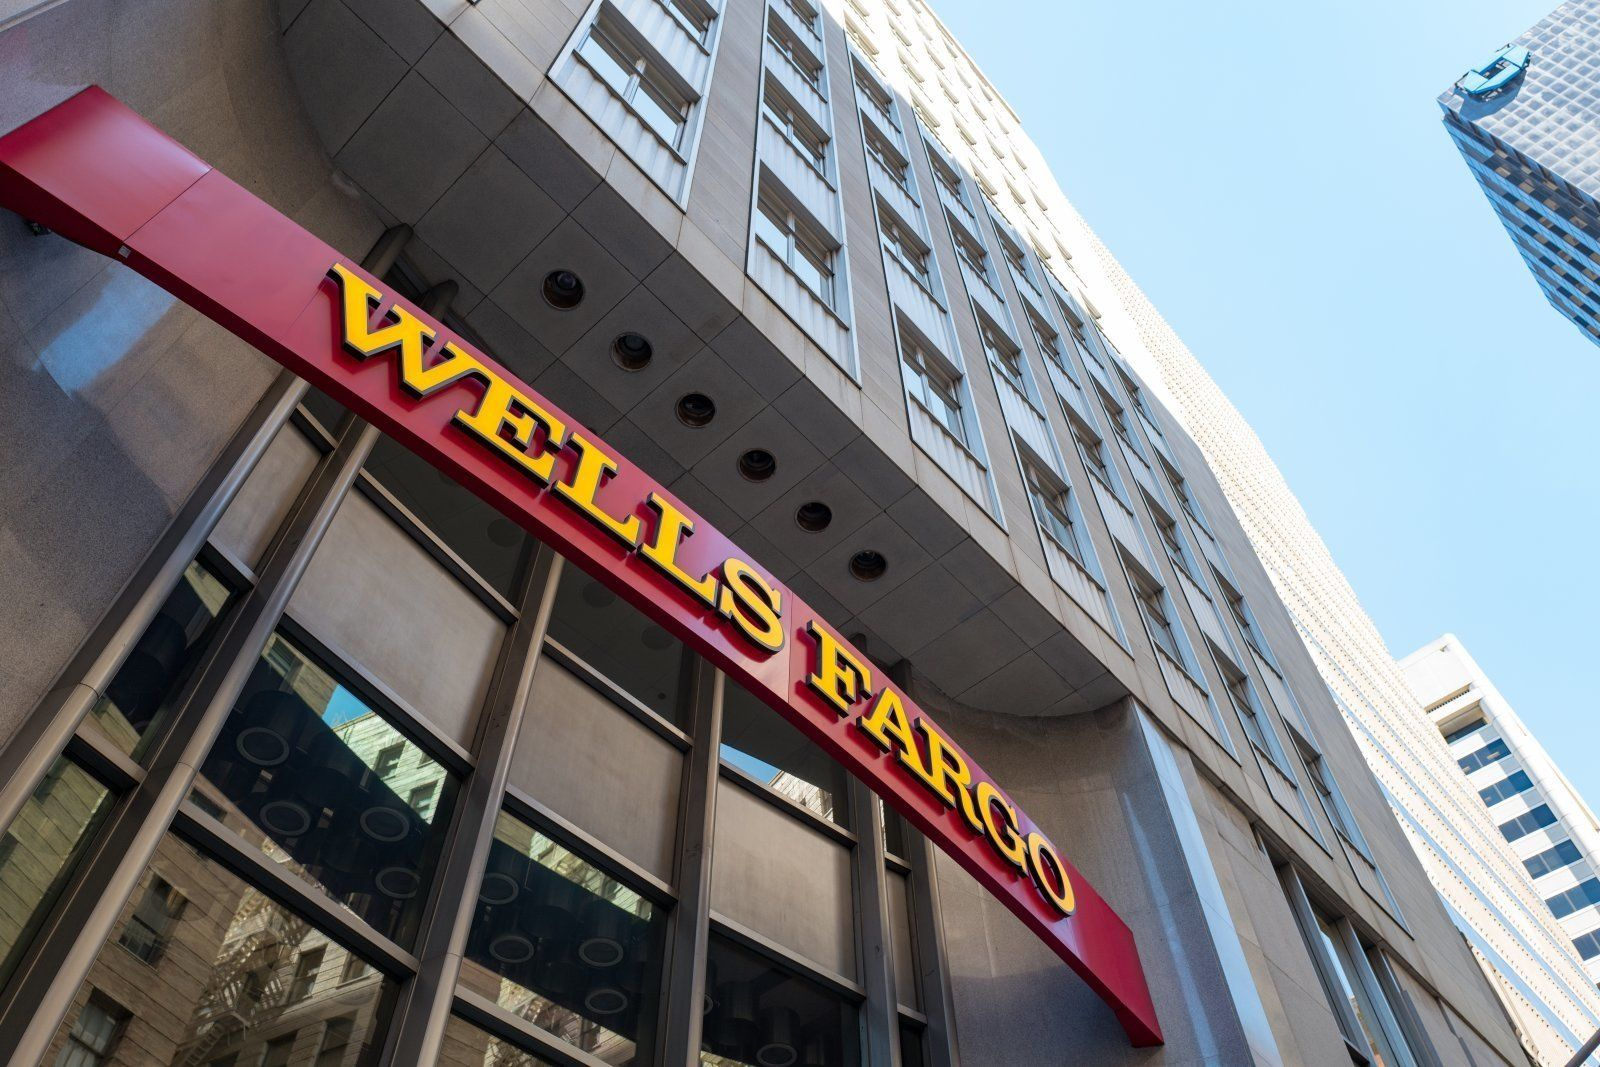 Signage with logo at headquarters of Wells Fargo Capital Finance, the commercial banking division of Wells Fargo Bank, in the Financial District neighborhood of San Francisco, California, September 26, 2016. (Photo via Smith Collection/Gado/Getty Images).